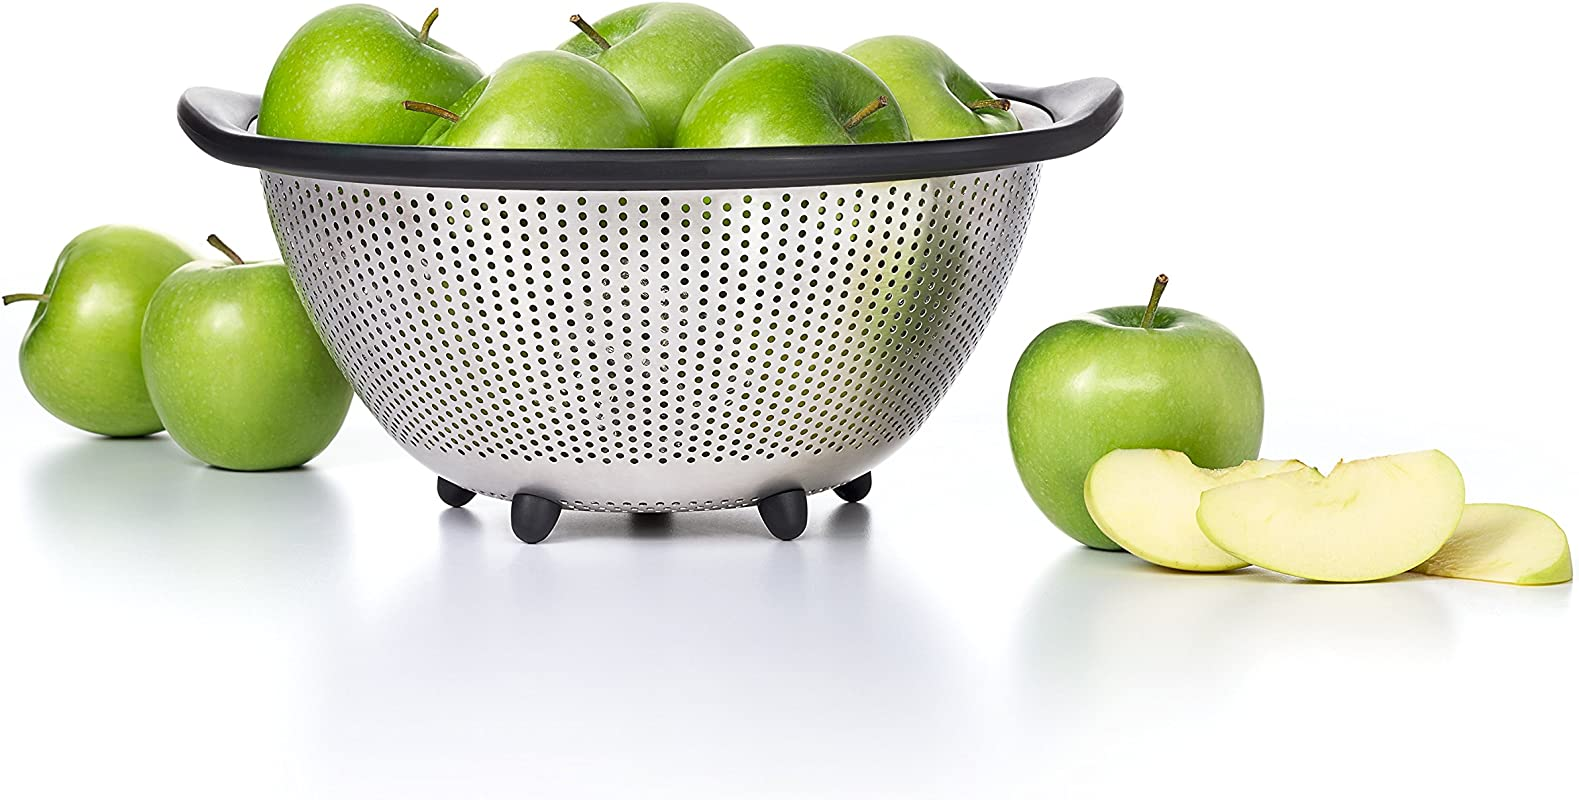 OXO 1134700 Good Grips 5 Quart Stainless Steel Colander Silver